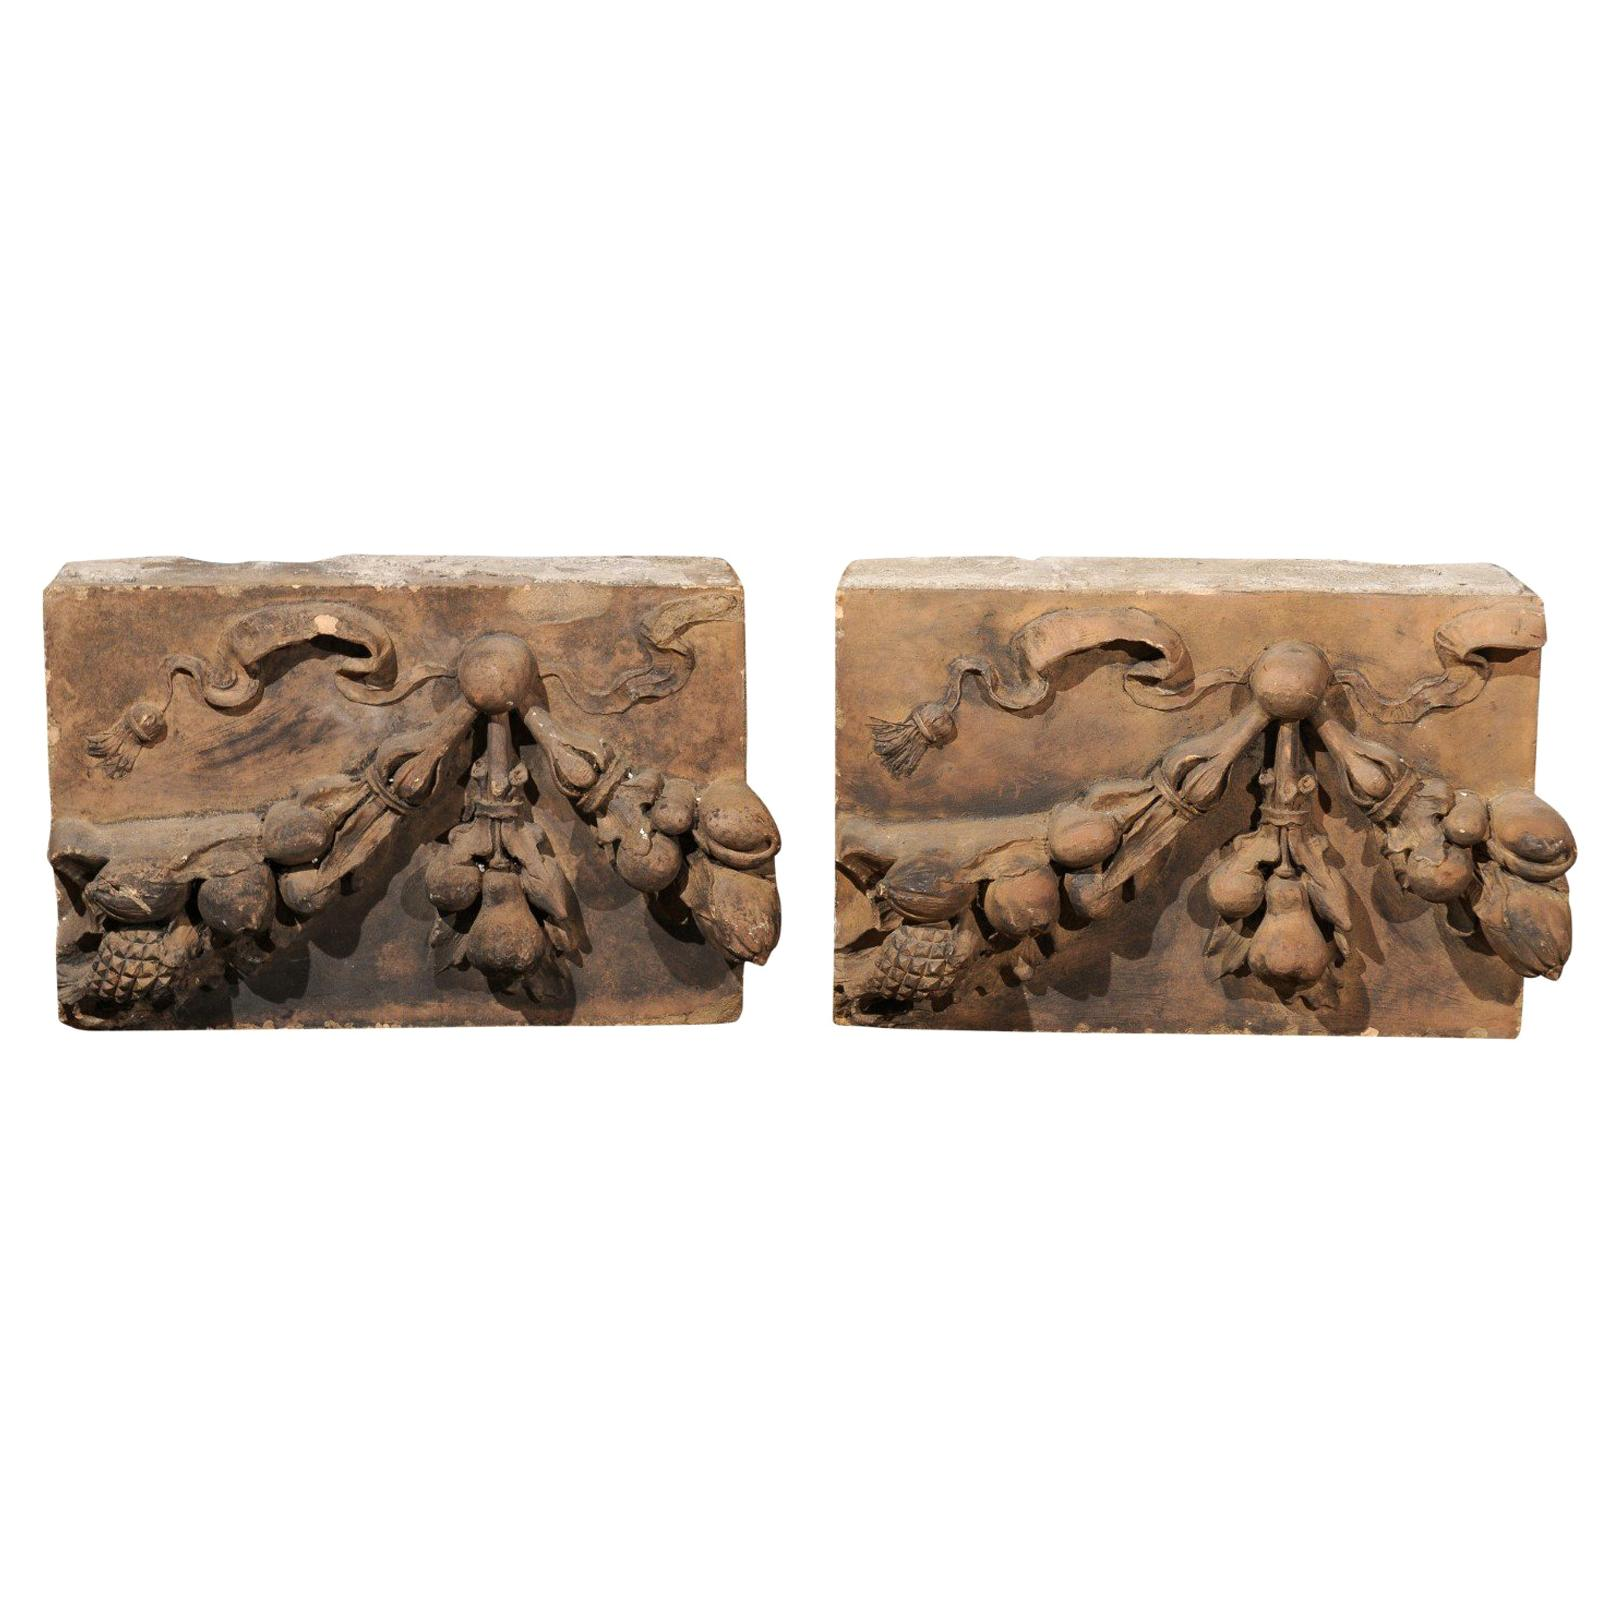 Pair of French 1860s Napoleon III Terracotta Architectural Fragments with Fruits